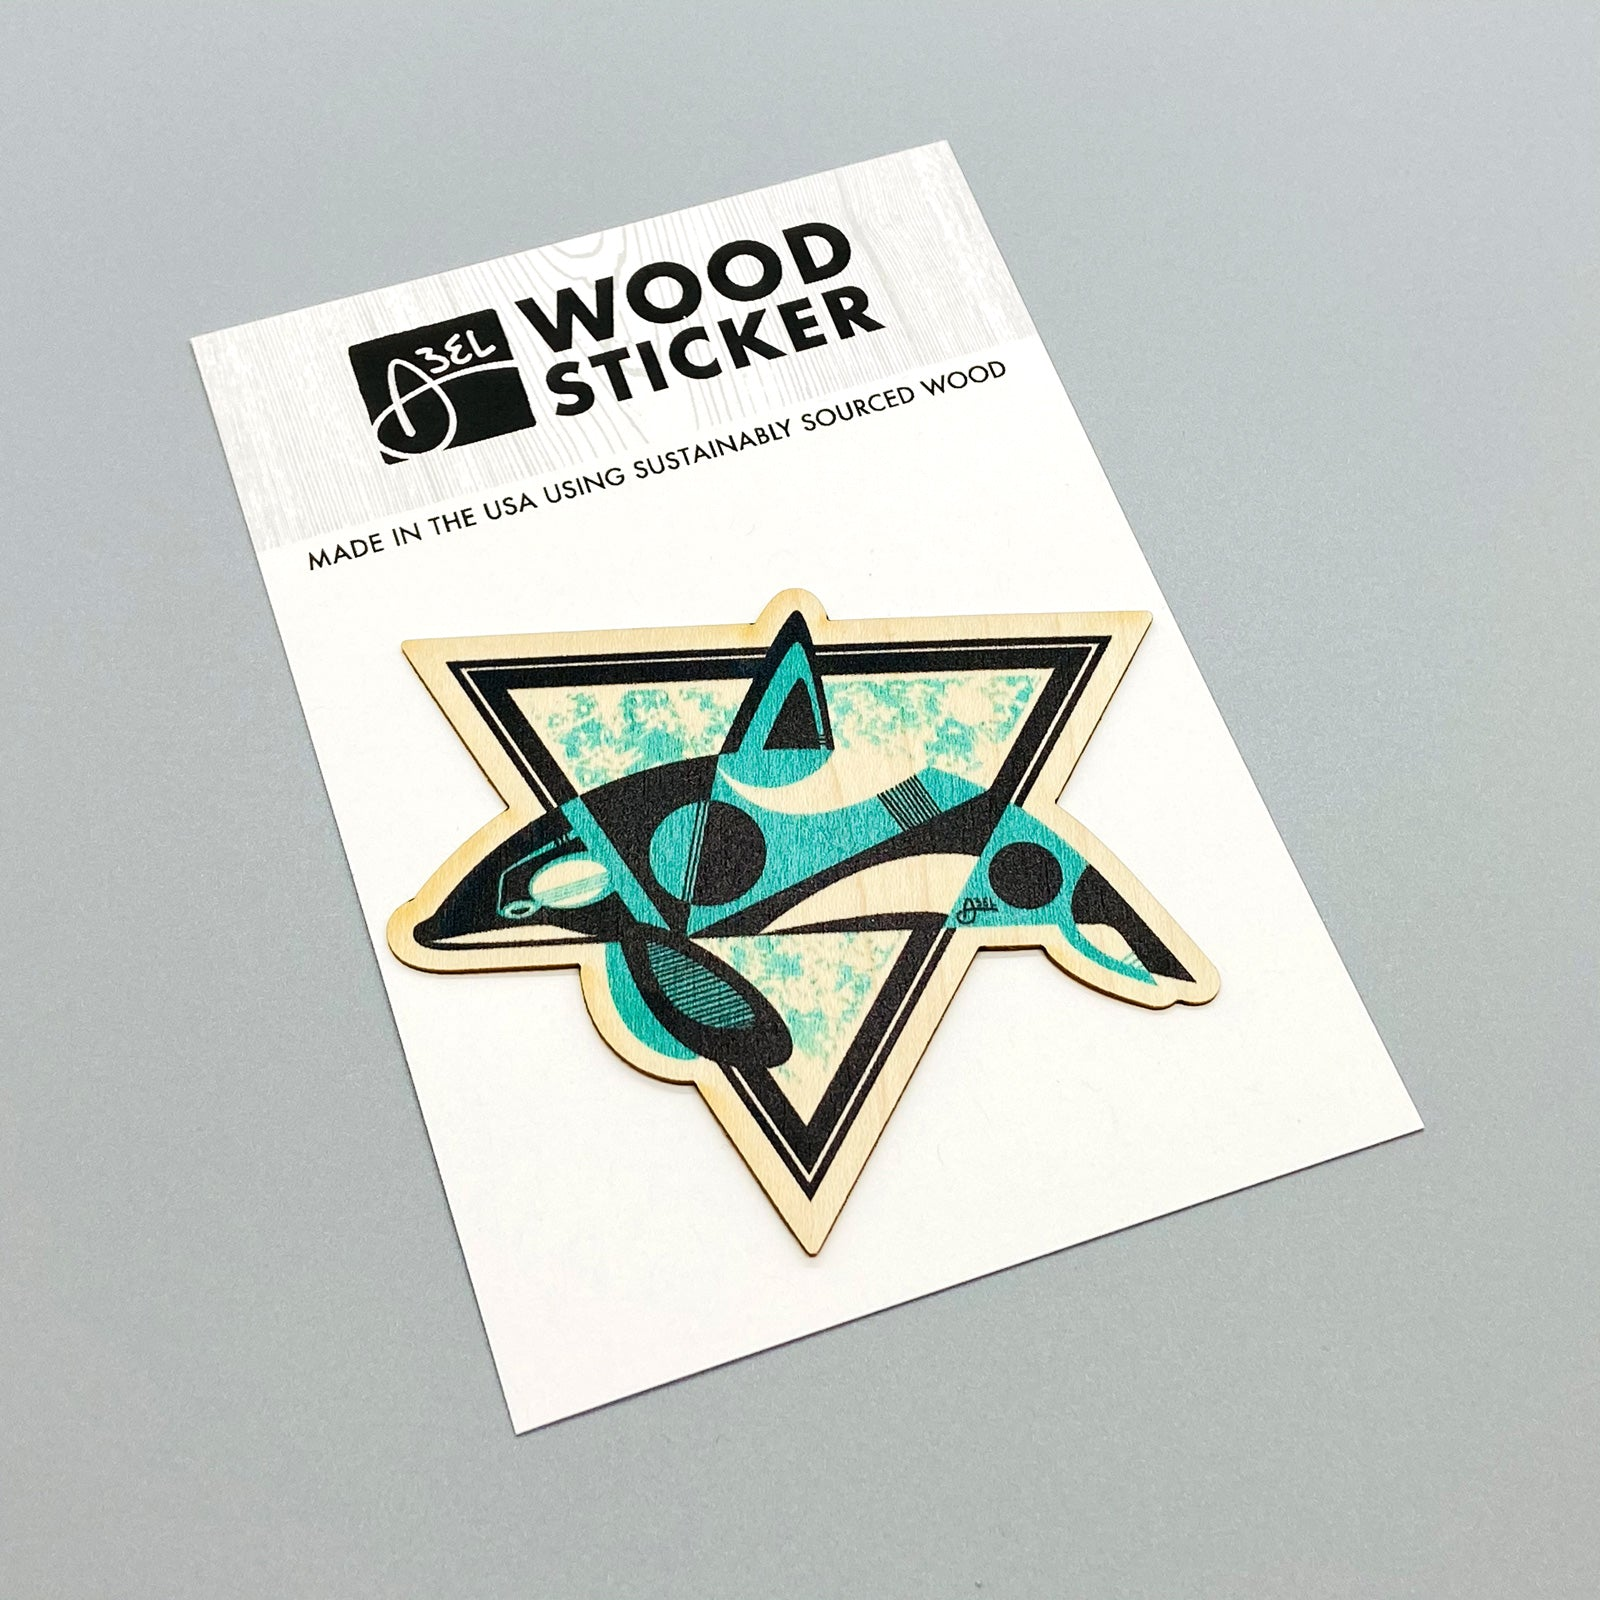 Wood Sticker: Orca